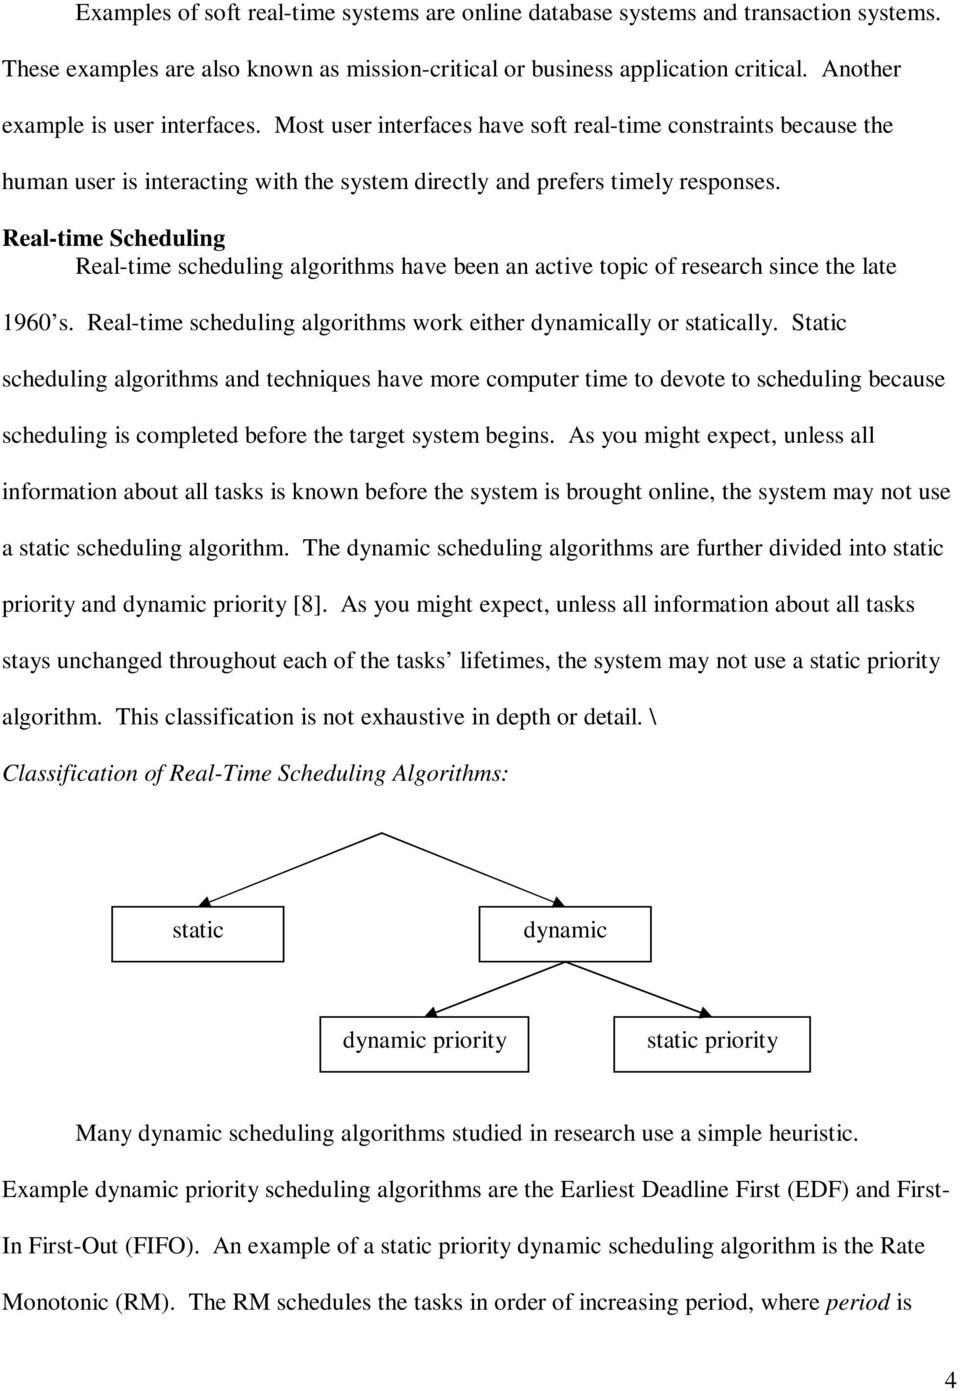 Real-time Scheduling Real-time scheduling algorithms have been an active topic of research since the late 1960 s. Real-time scheduling algorithms work either dynamically or statically.